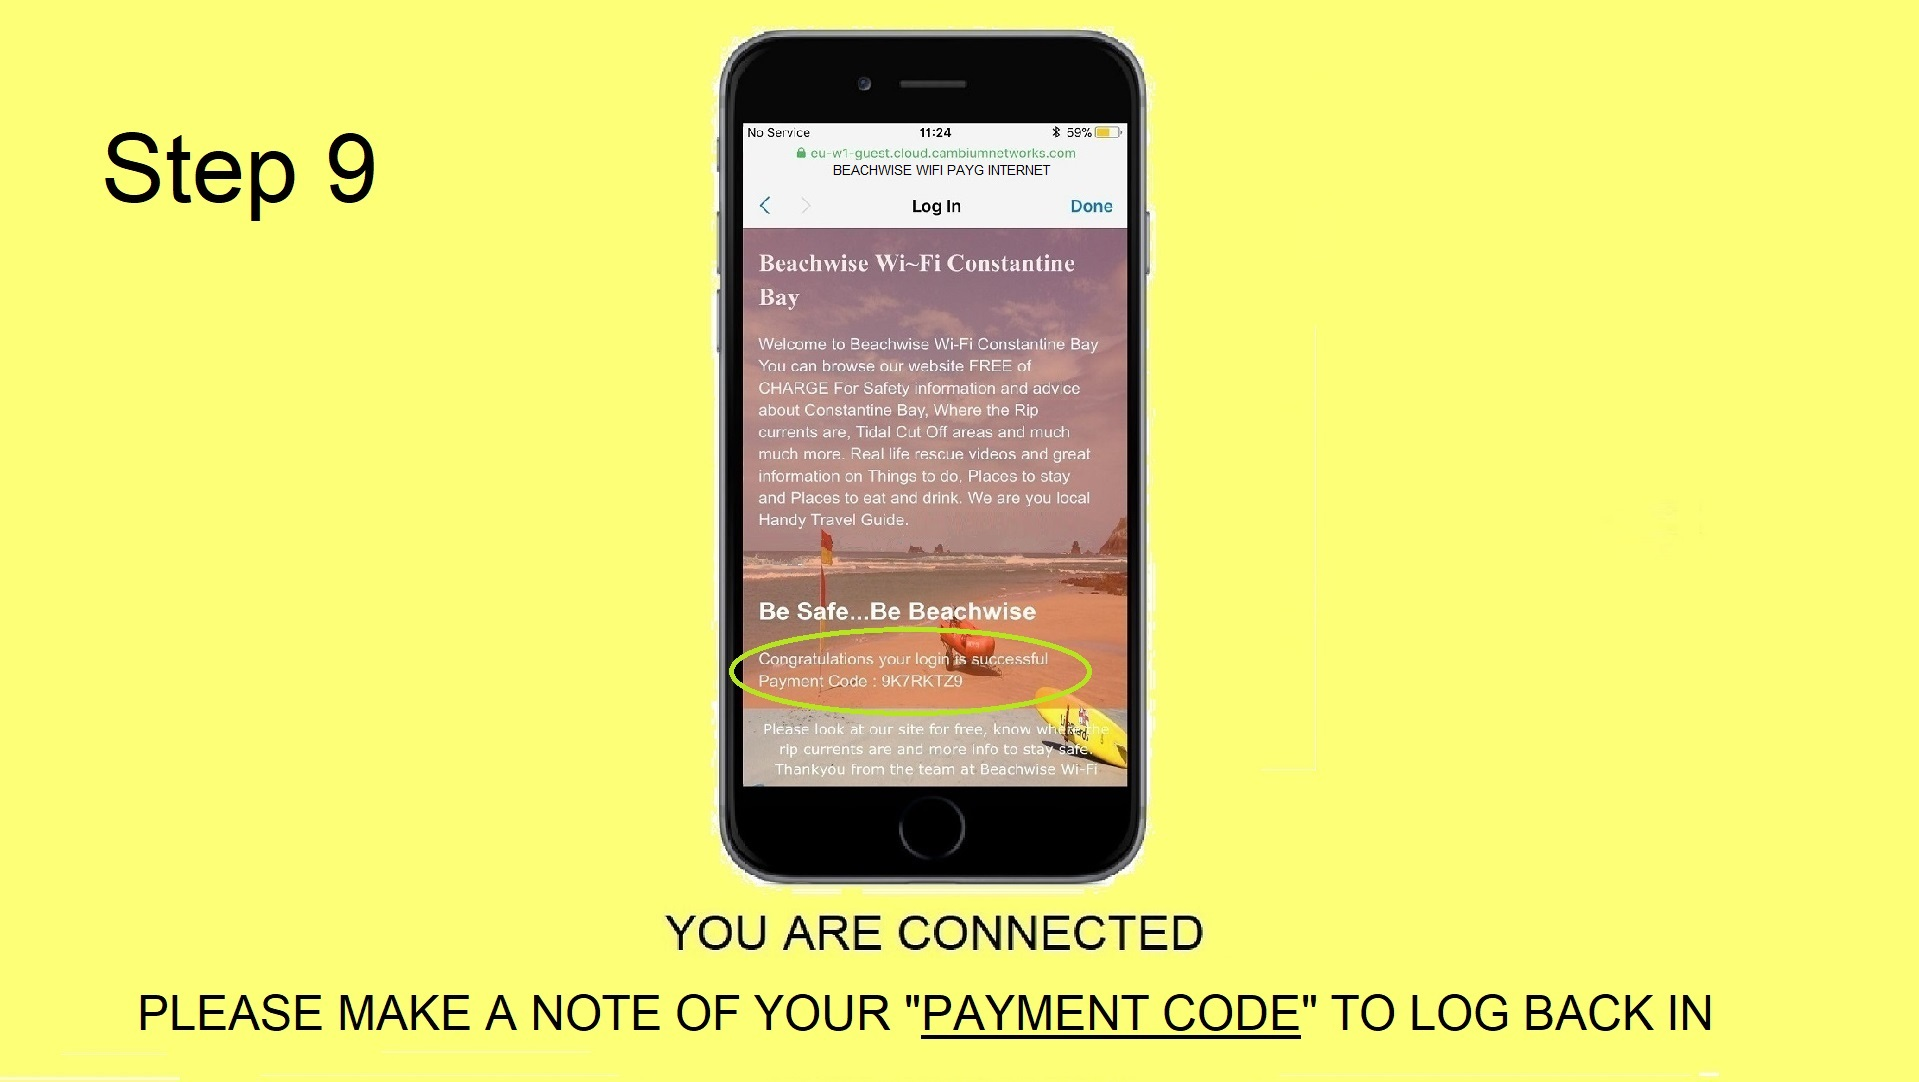 1_9.complete-and-payment-code-for-logging-back-in